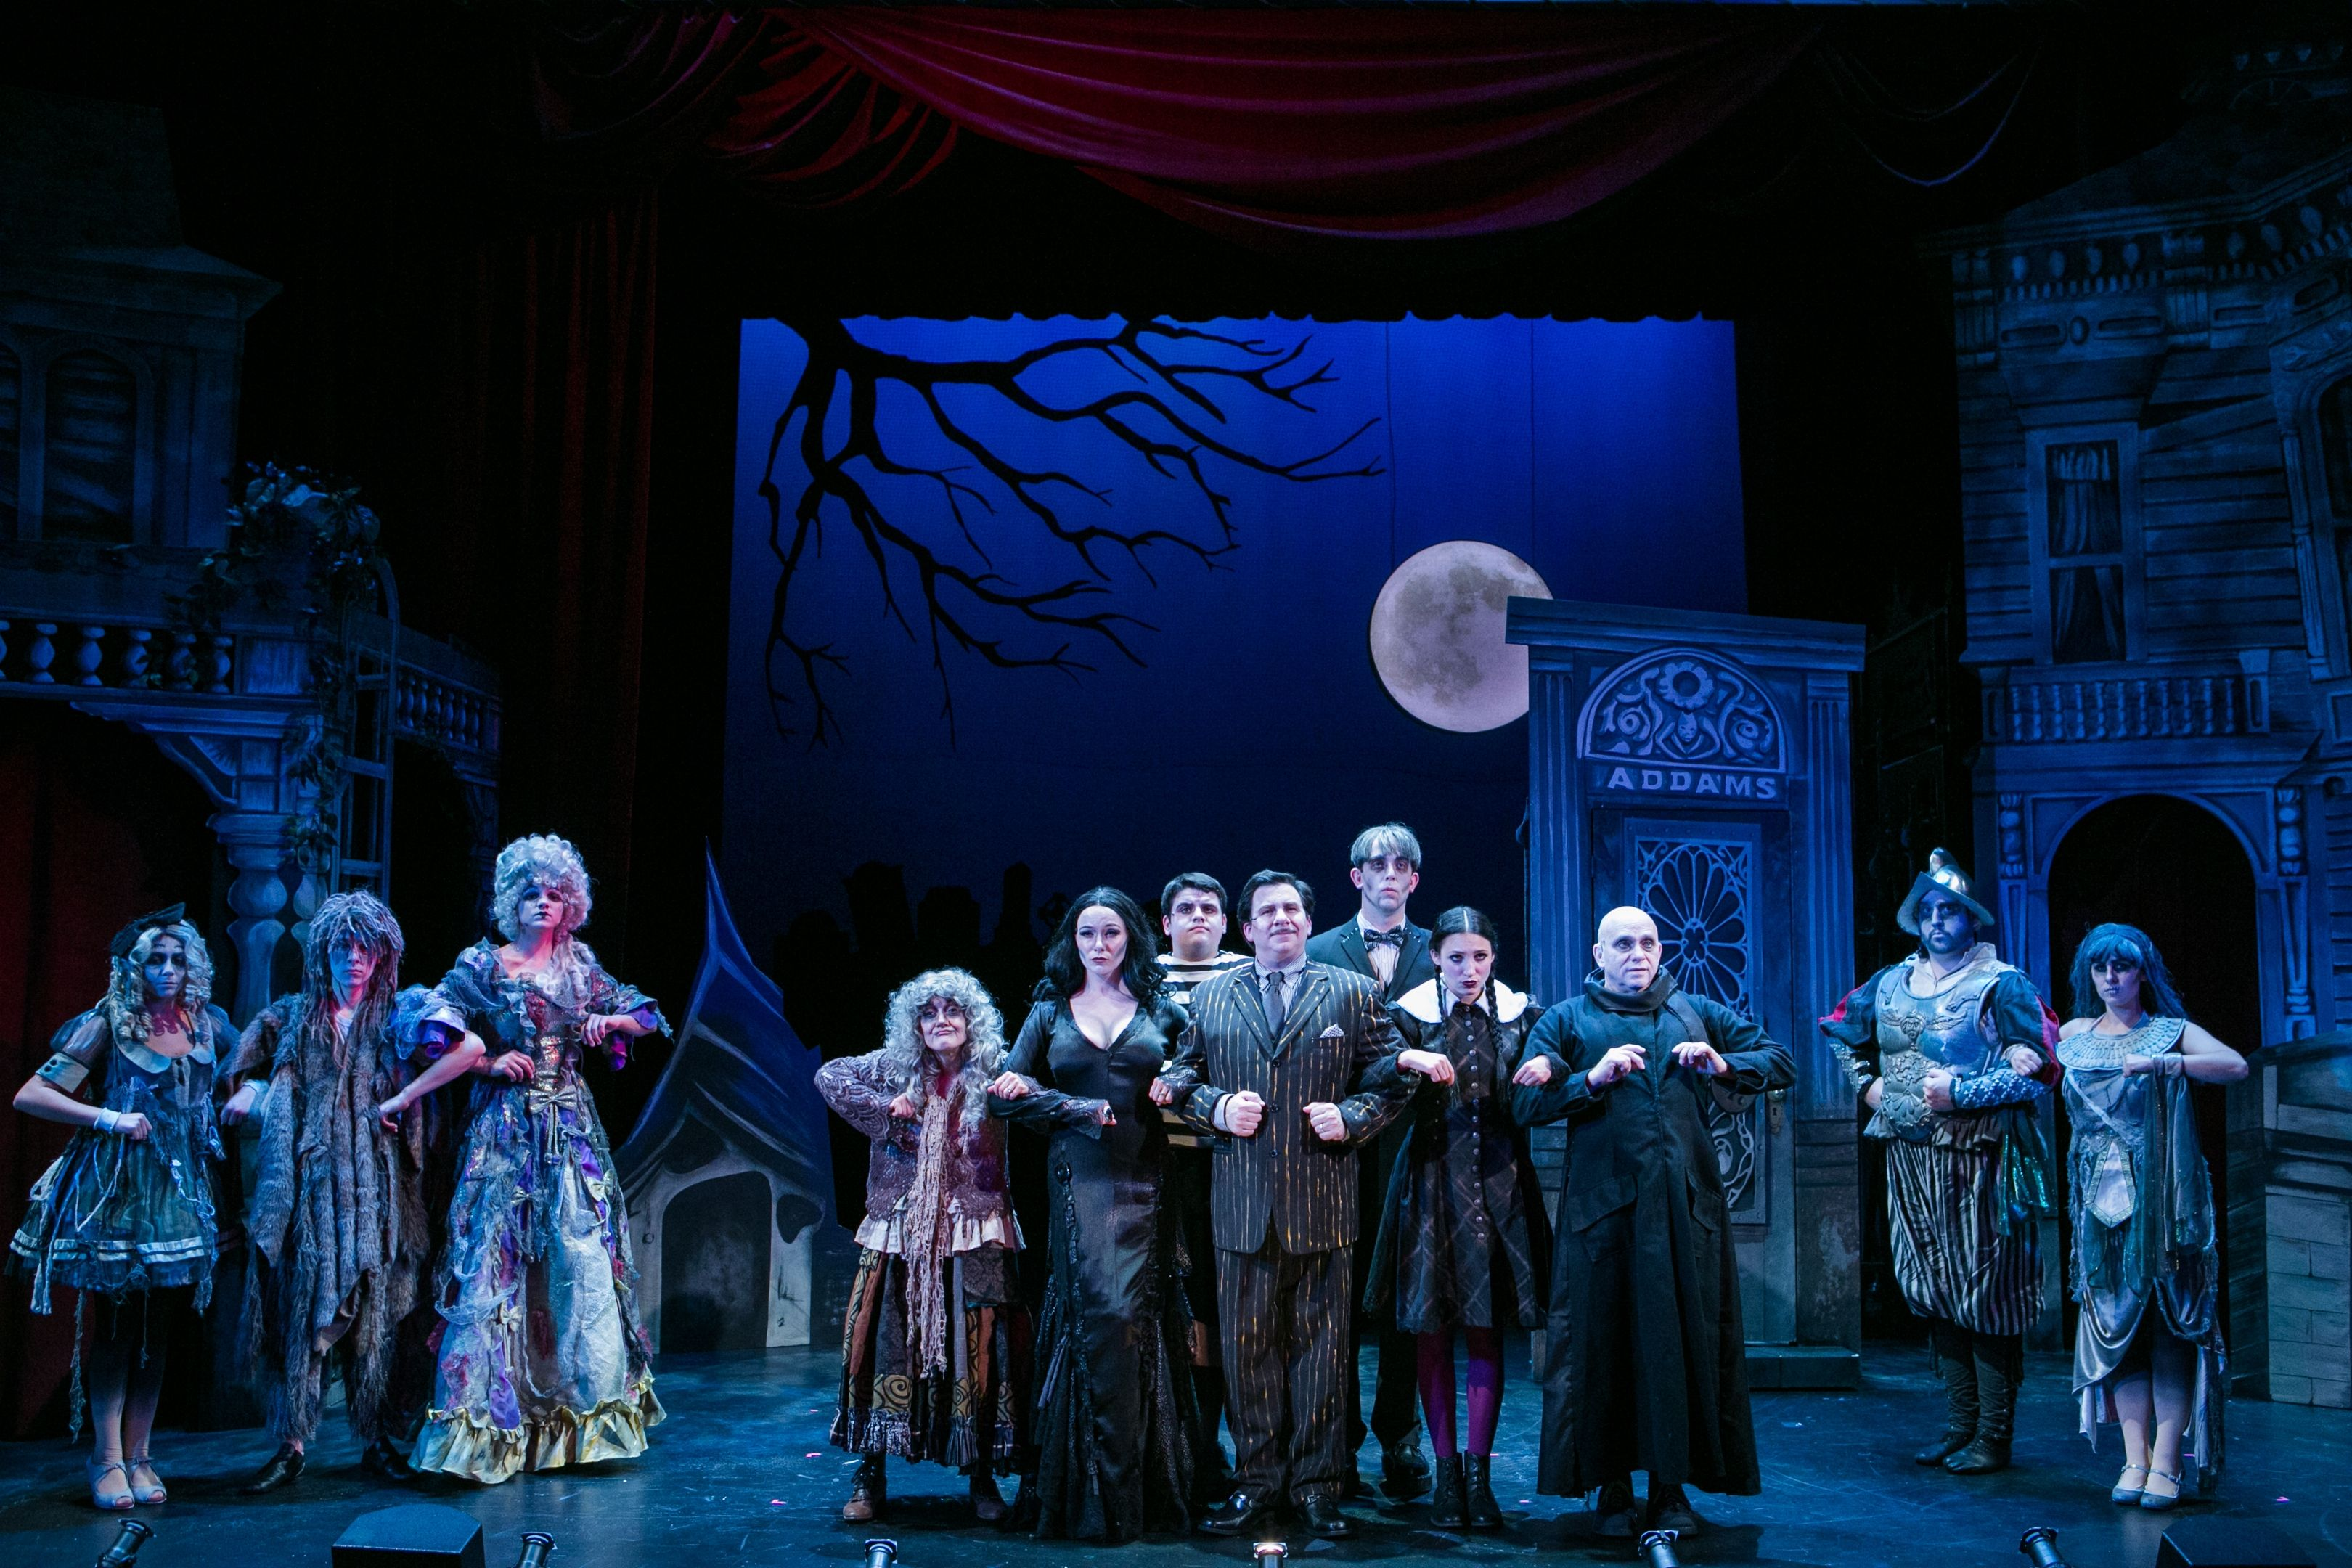 1000 images about addams family on pinterest set design the addams family and families addams family set